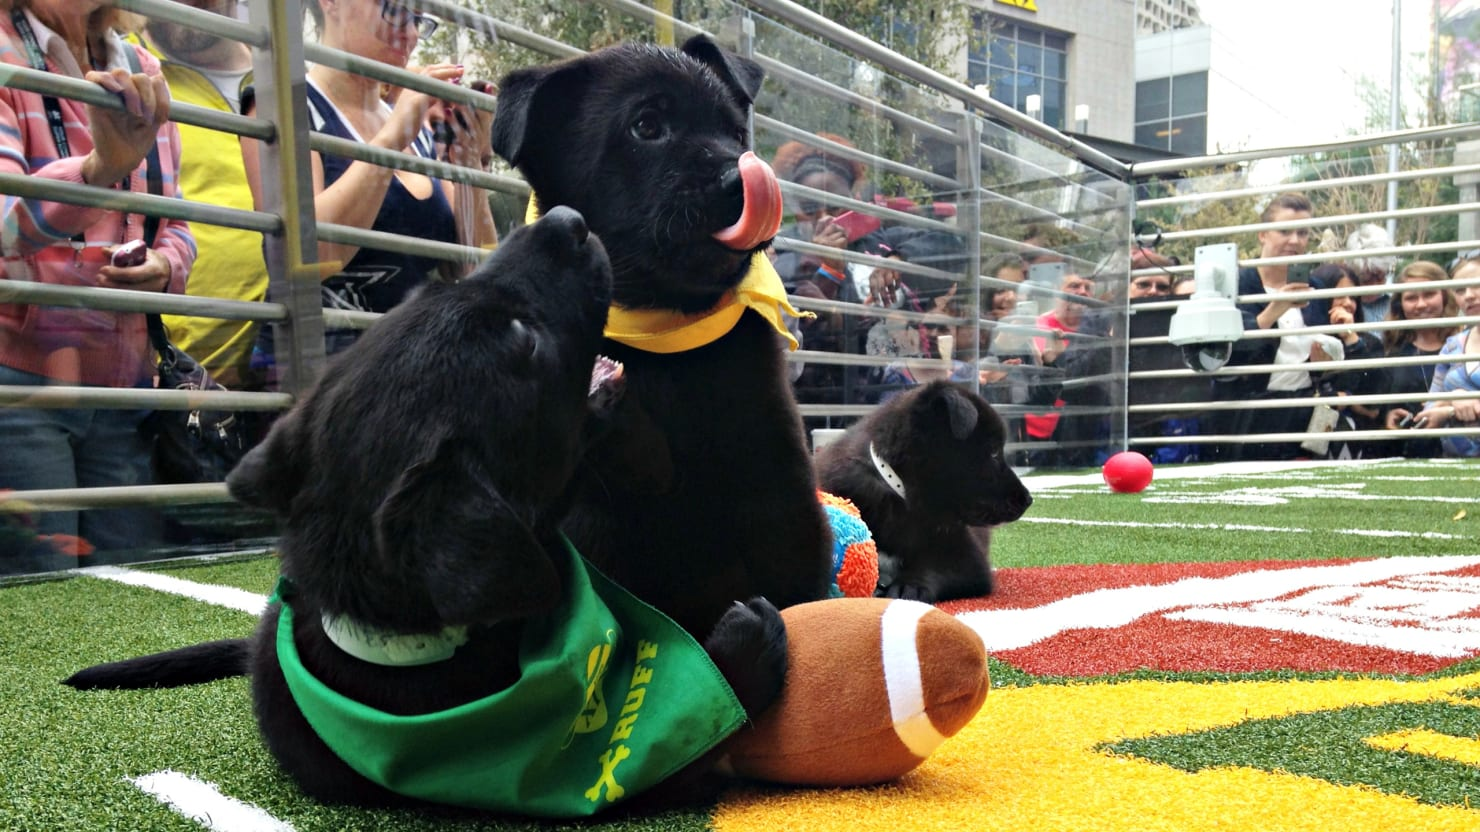 How to Watch Live: Puppy Bowl and Kitten Bowl 2017